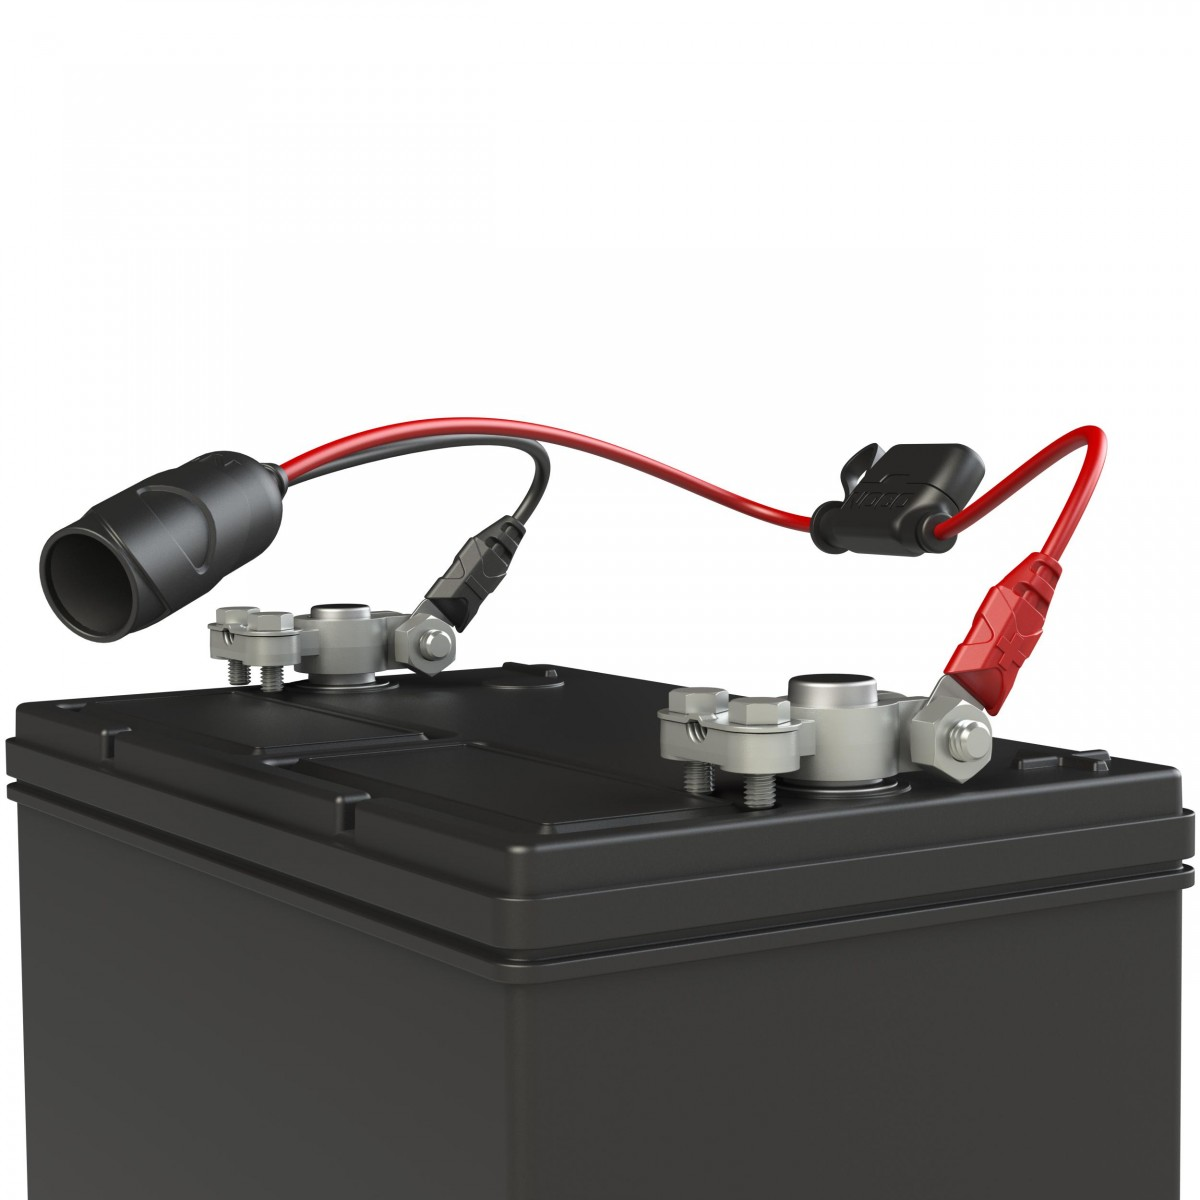 S L likewise Bhold V likewise Energizer Bp additionally Main Qimg F C Afed Fa B Ef D as well X. on 9 volt battery snap connector